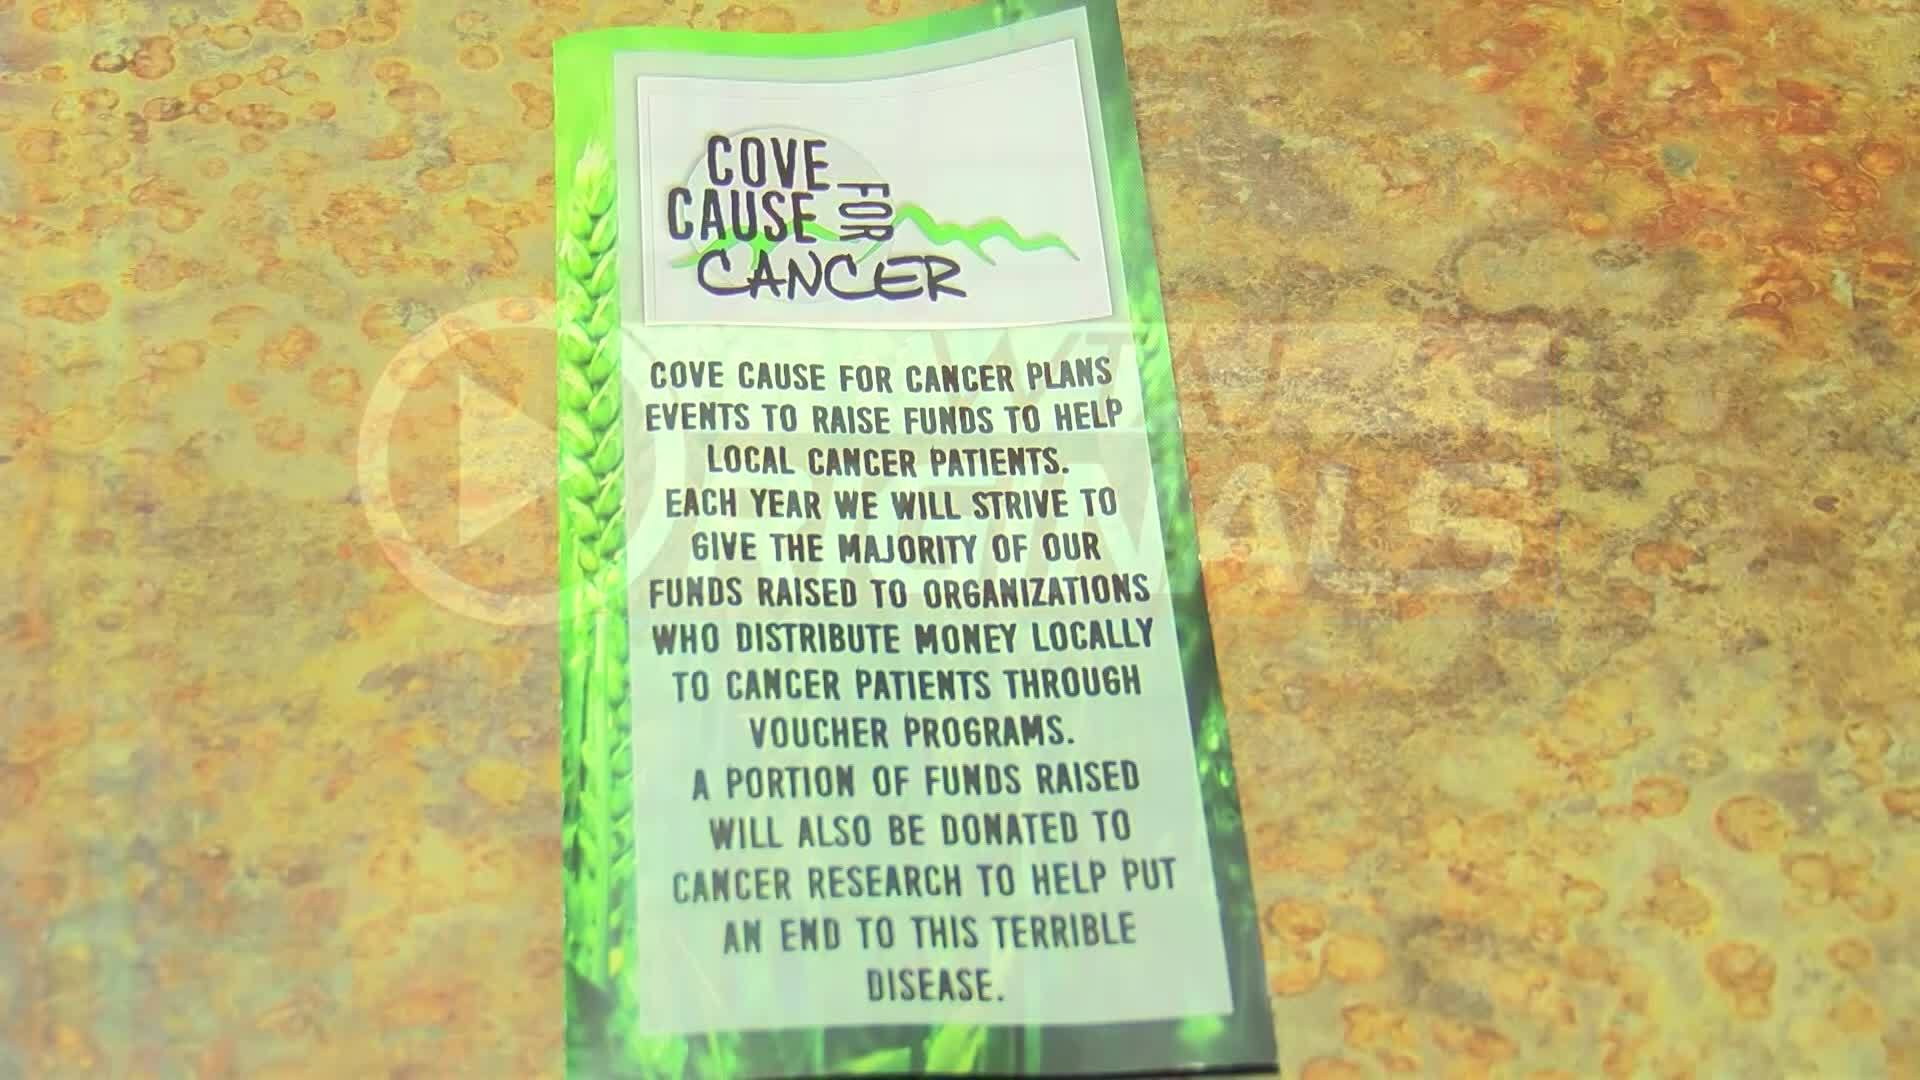 Organization raising money for cancer patients in the area